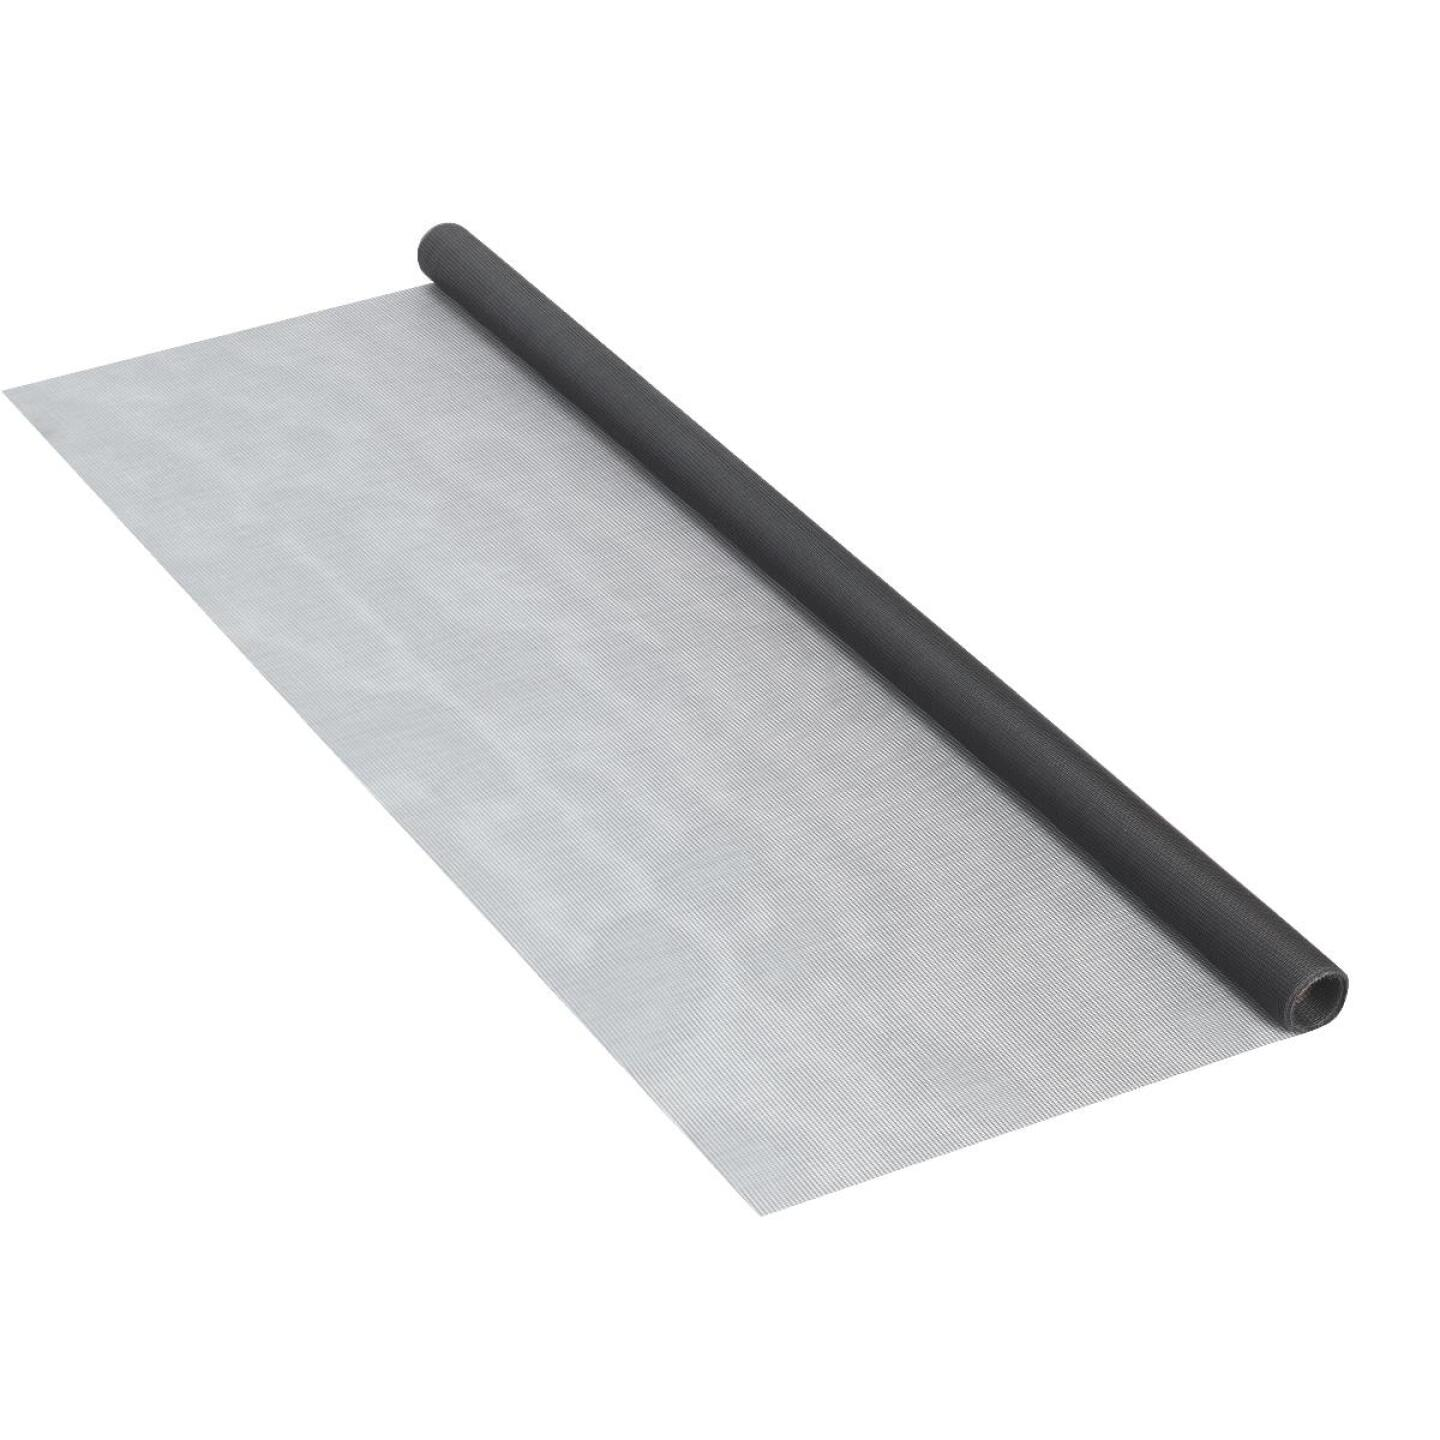 Phifer 30 In. x 84 In. Charcoal Fiberglass Screen Cloth Ready Rolls Image 2